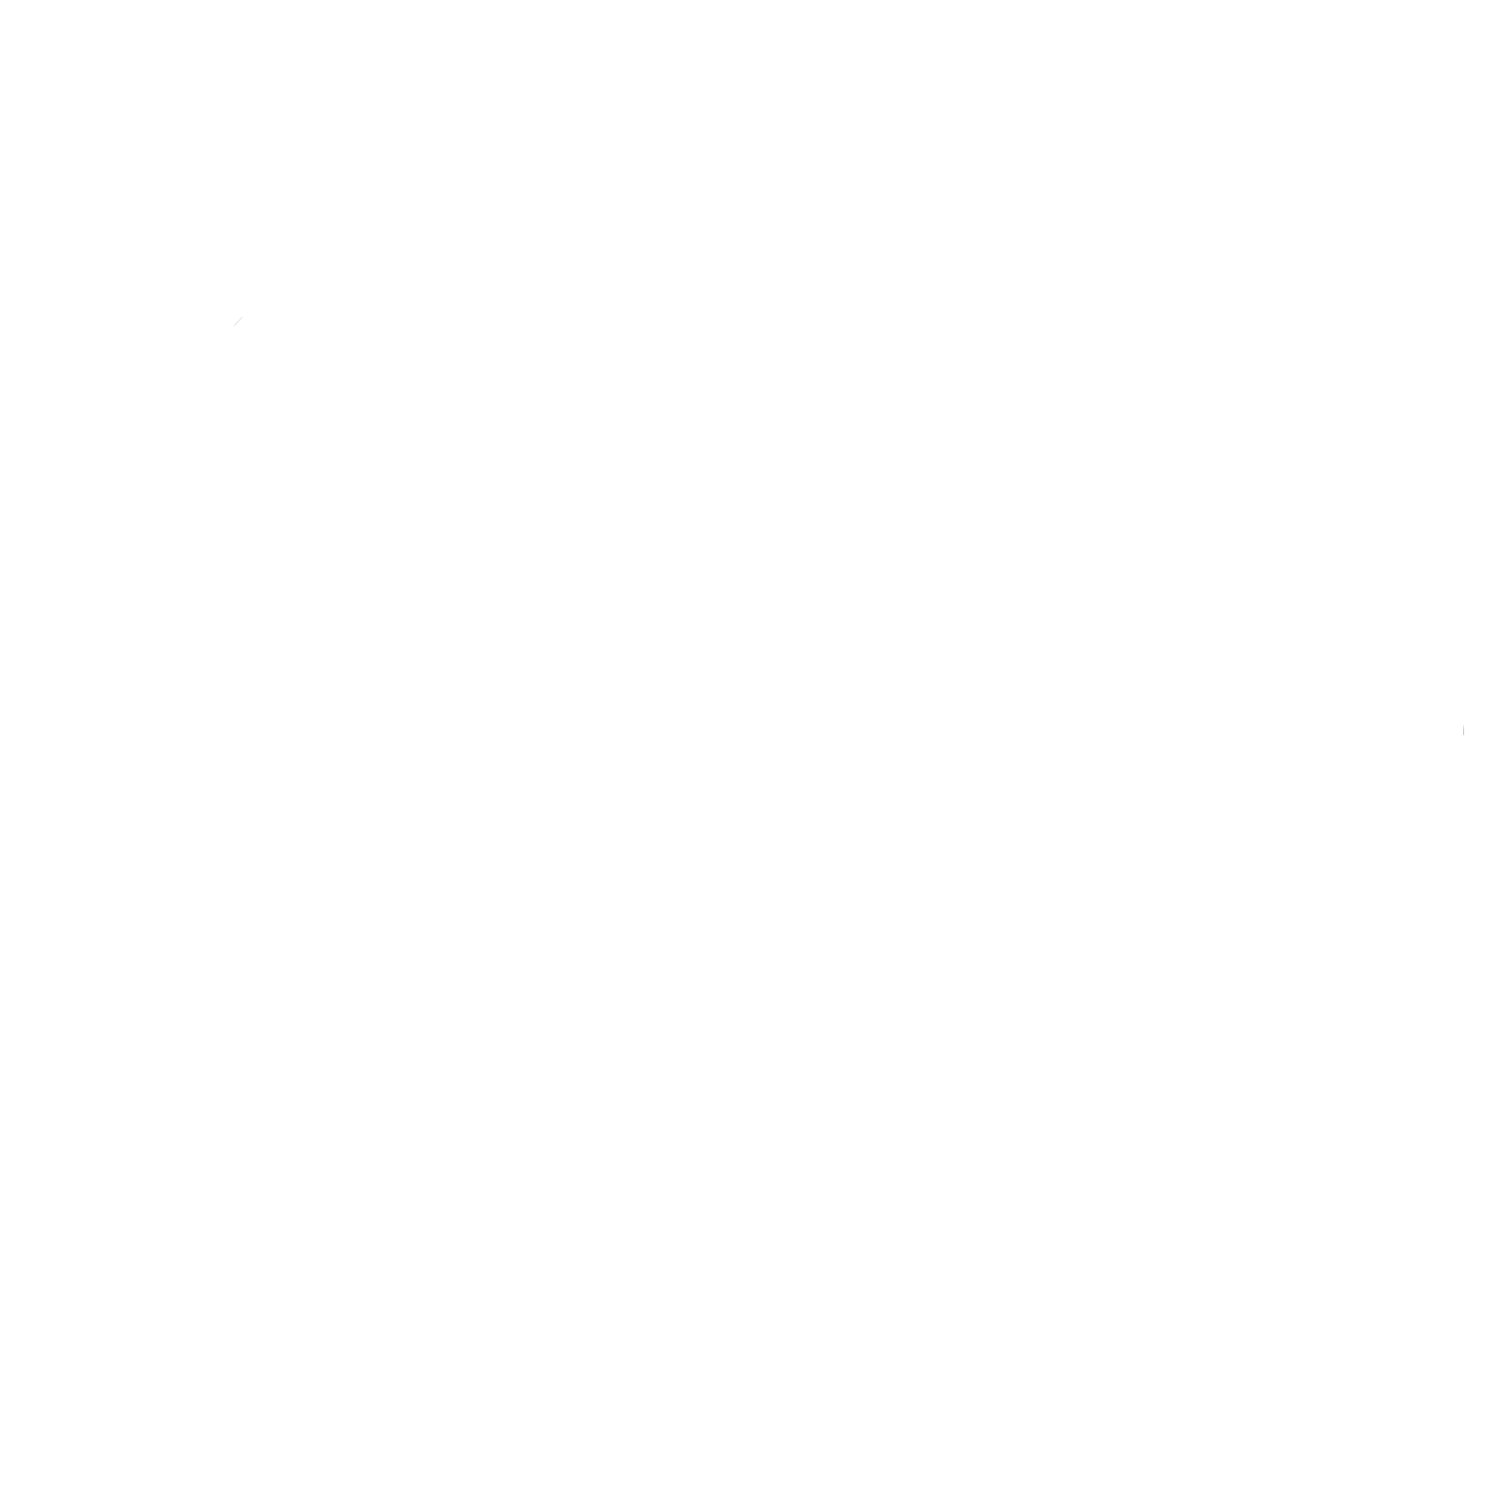 Megan Garner - Plant Based Nutrition & Naturopathy